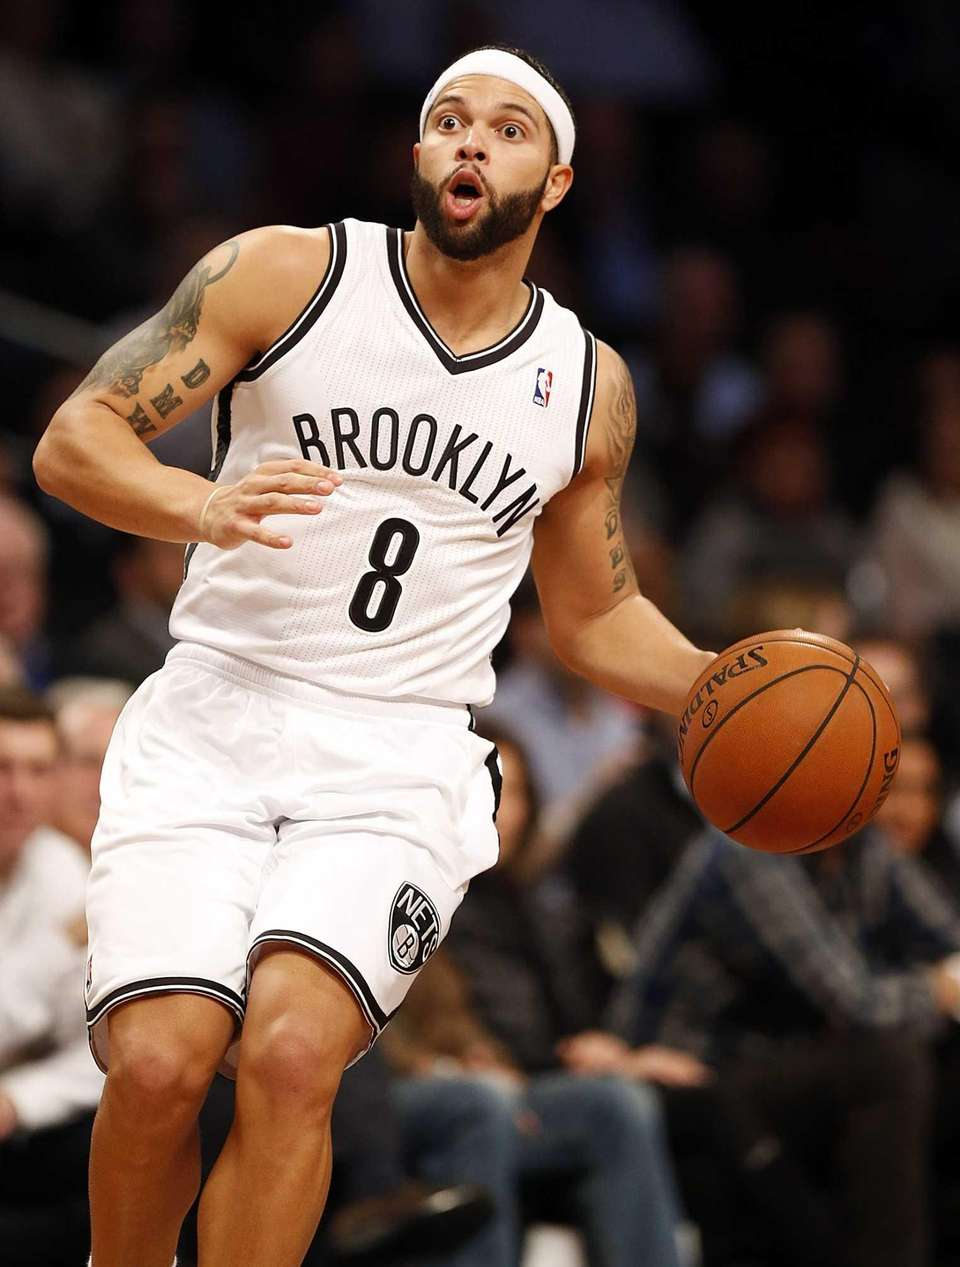 Nets point guard Deron Williams brings the ball